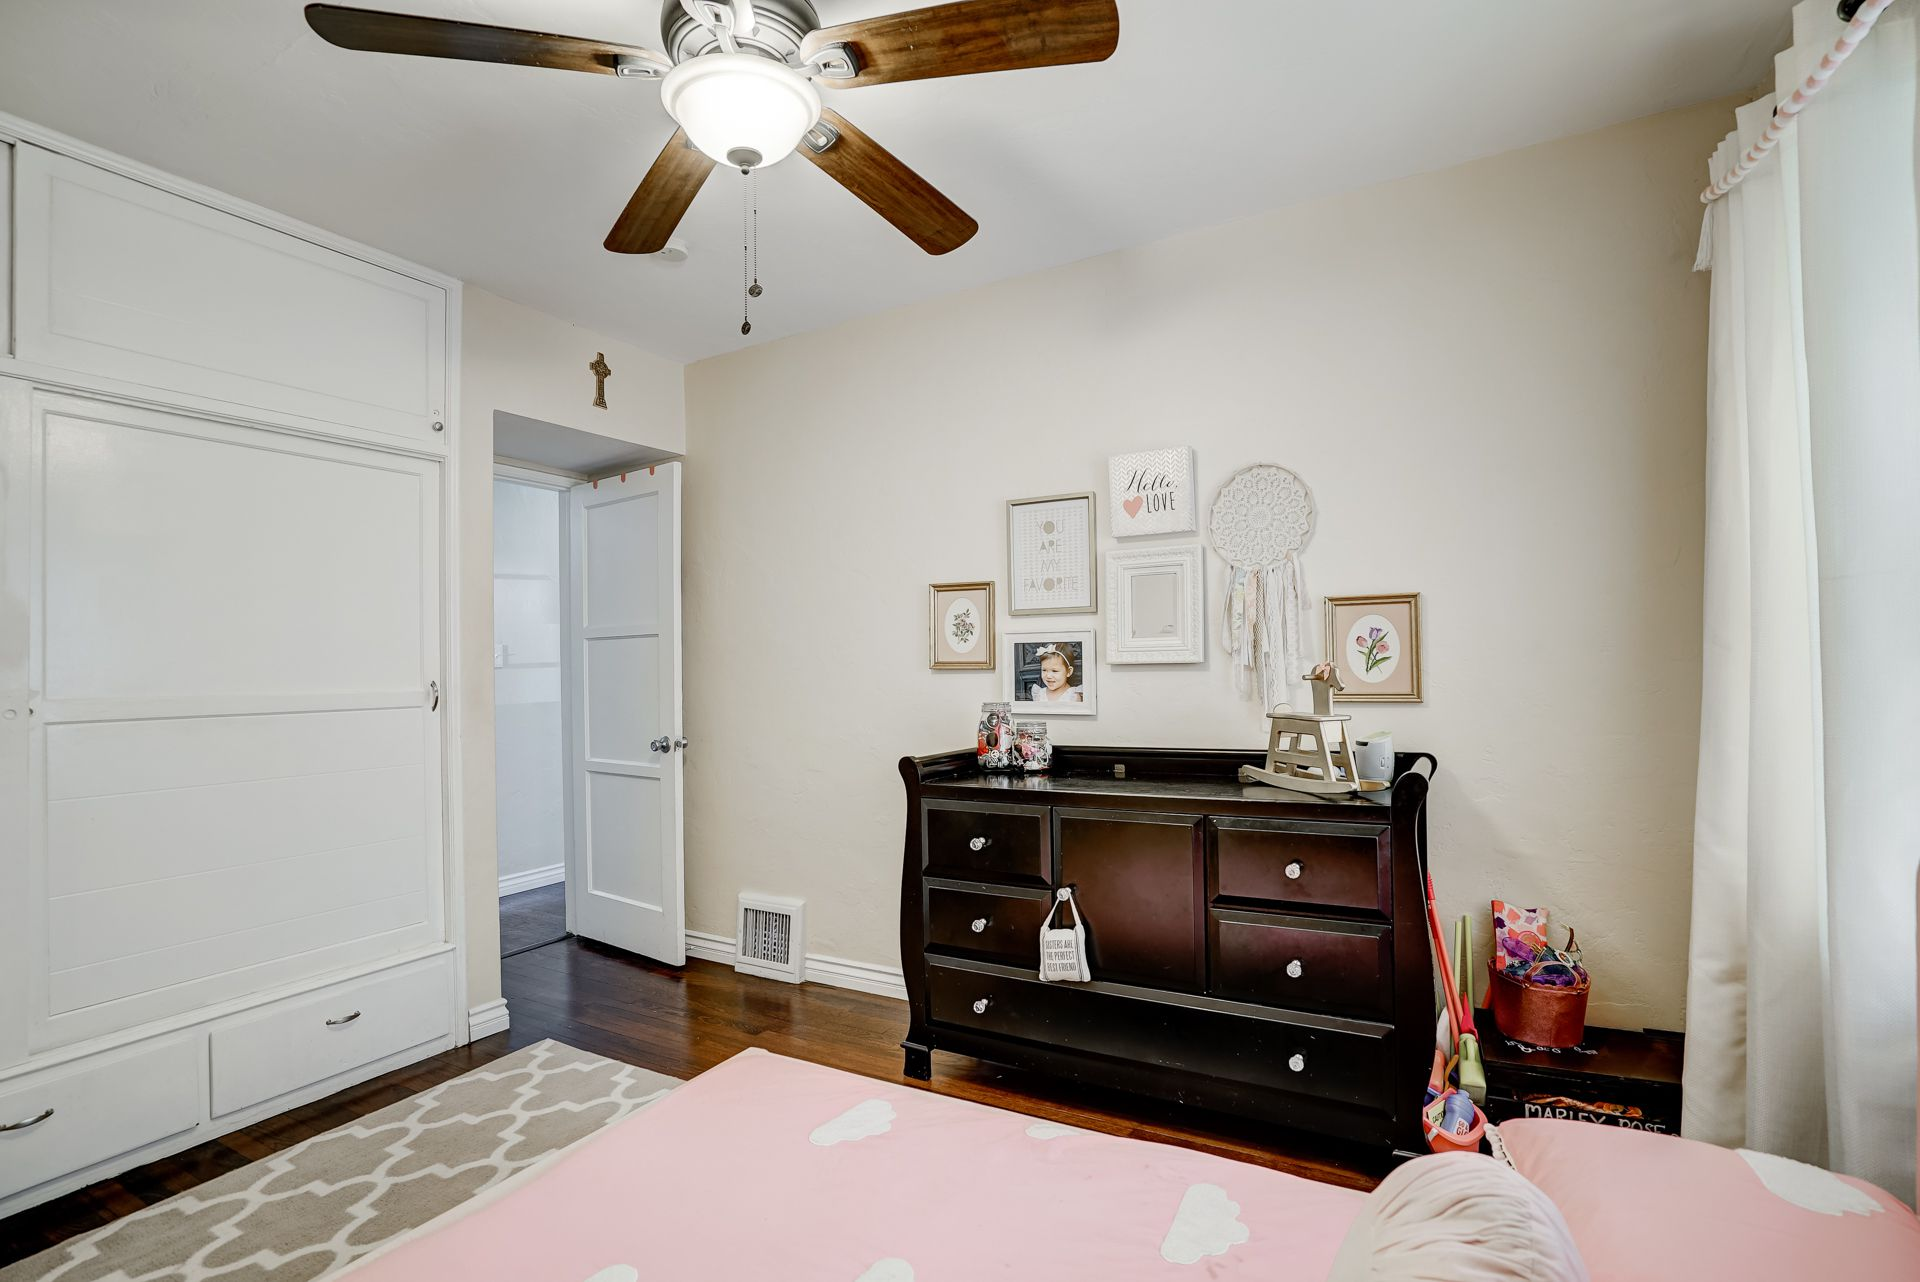 The best part of homes built in this era are the unique closets with extra storage on top and bottom.